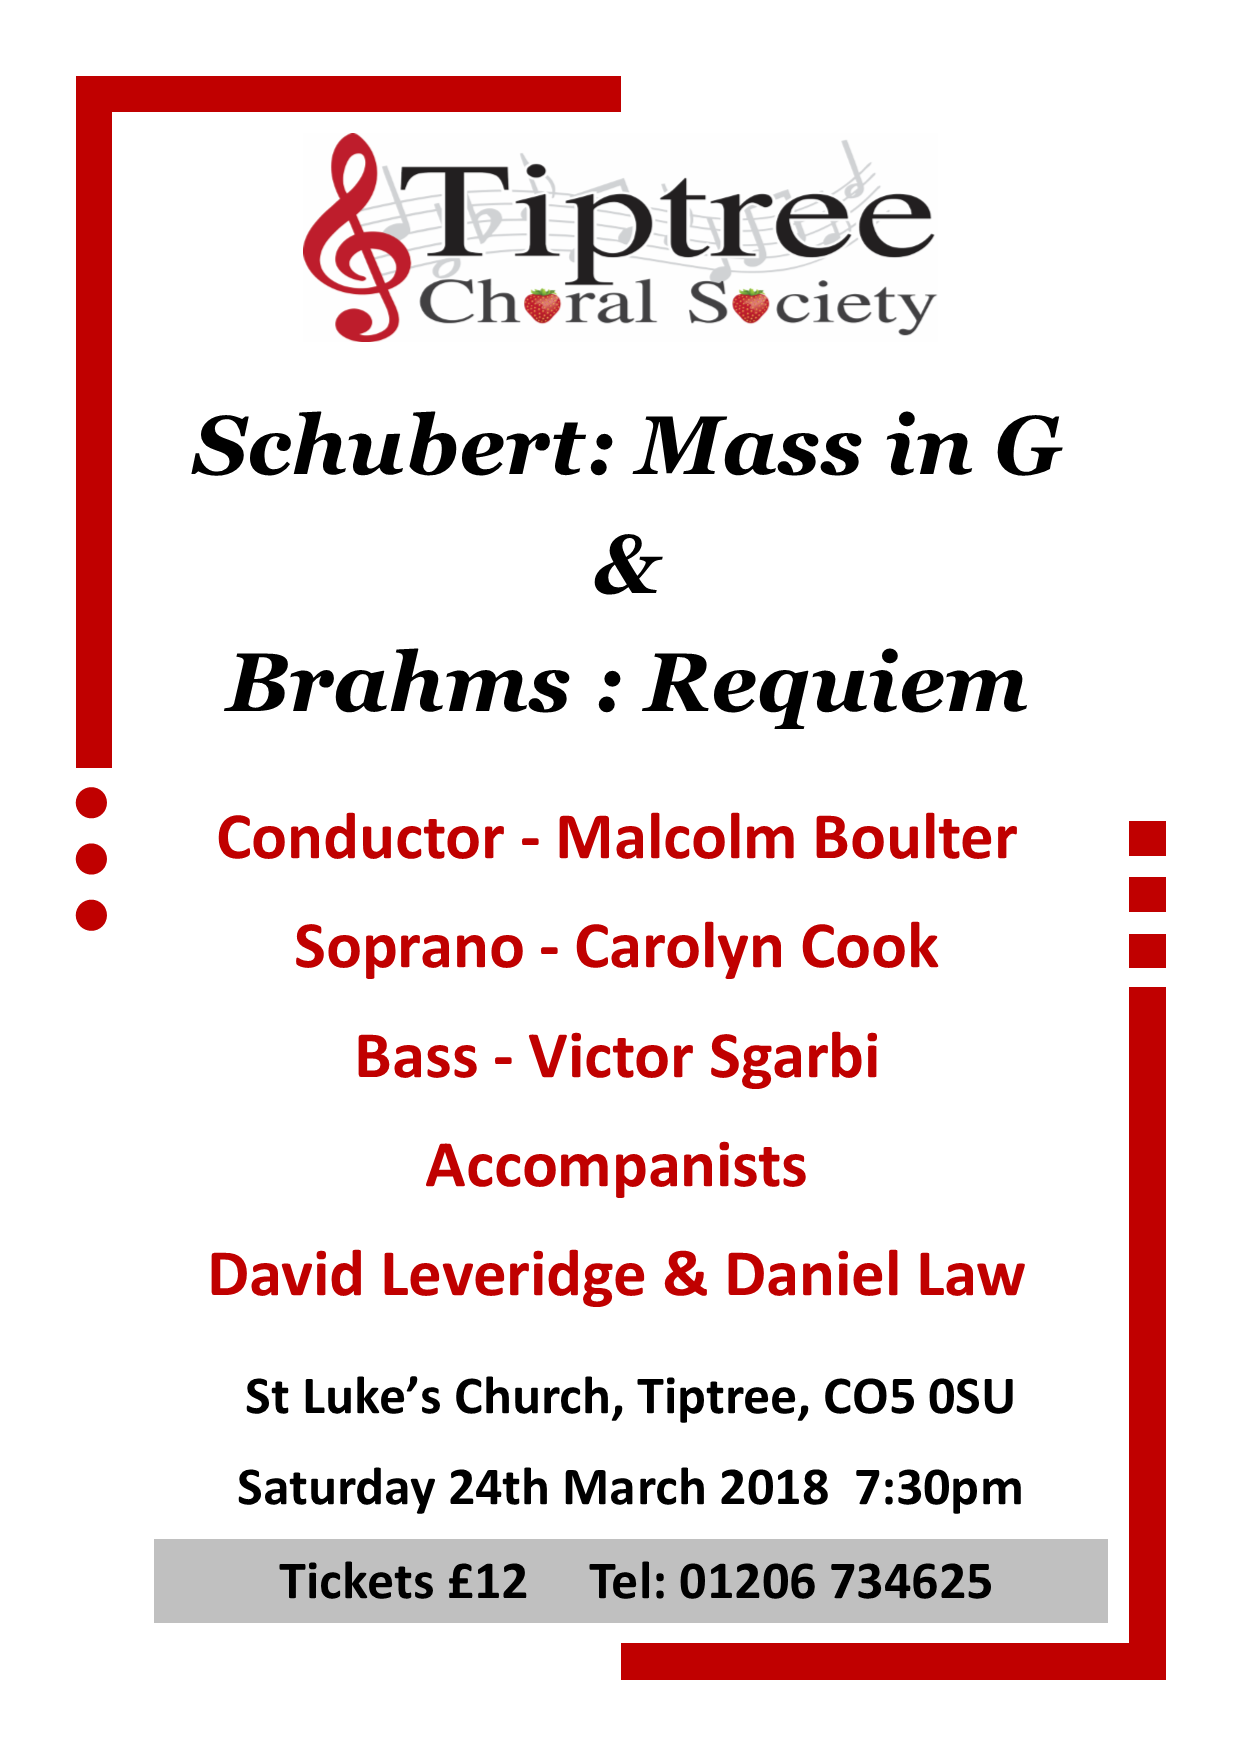 Tiptree Choral Society sings Schubert and Brahms